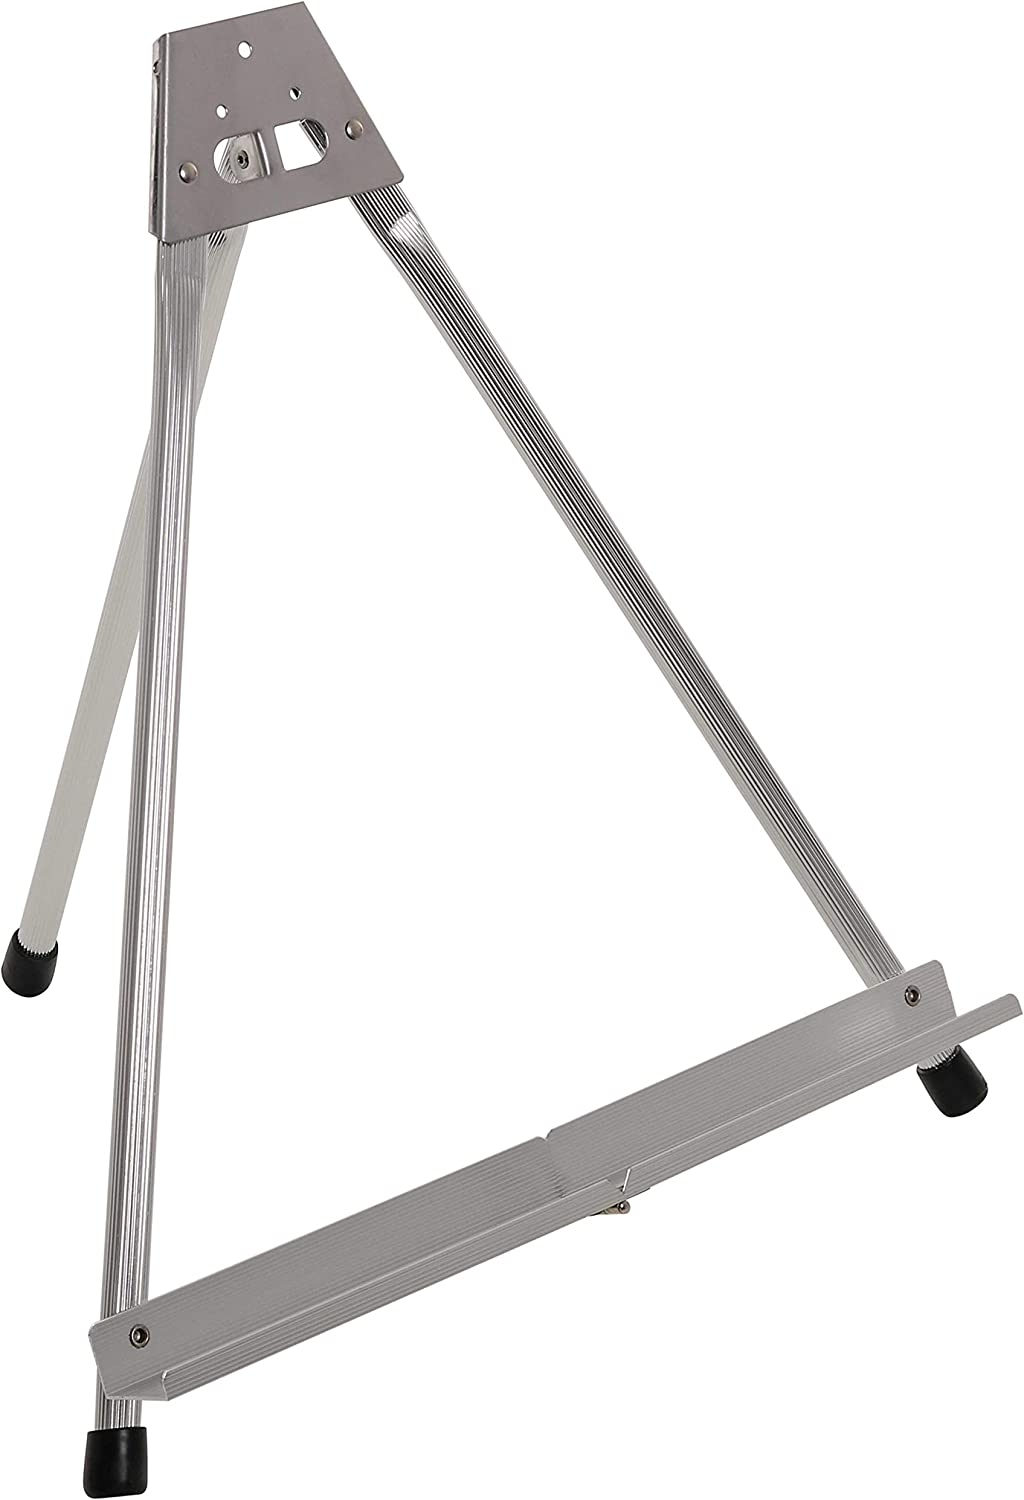 "U.S. Art Supply 15"" High Aluminum Tabletop Display Easel with Collapsible Folding Frame - Portable Artist Tripod Stand - Holds Canvas, Paintings, Books, Presentations, Photos, Pictures, Signs, Posters"